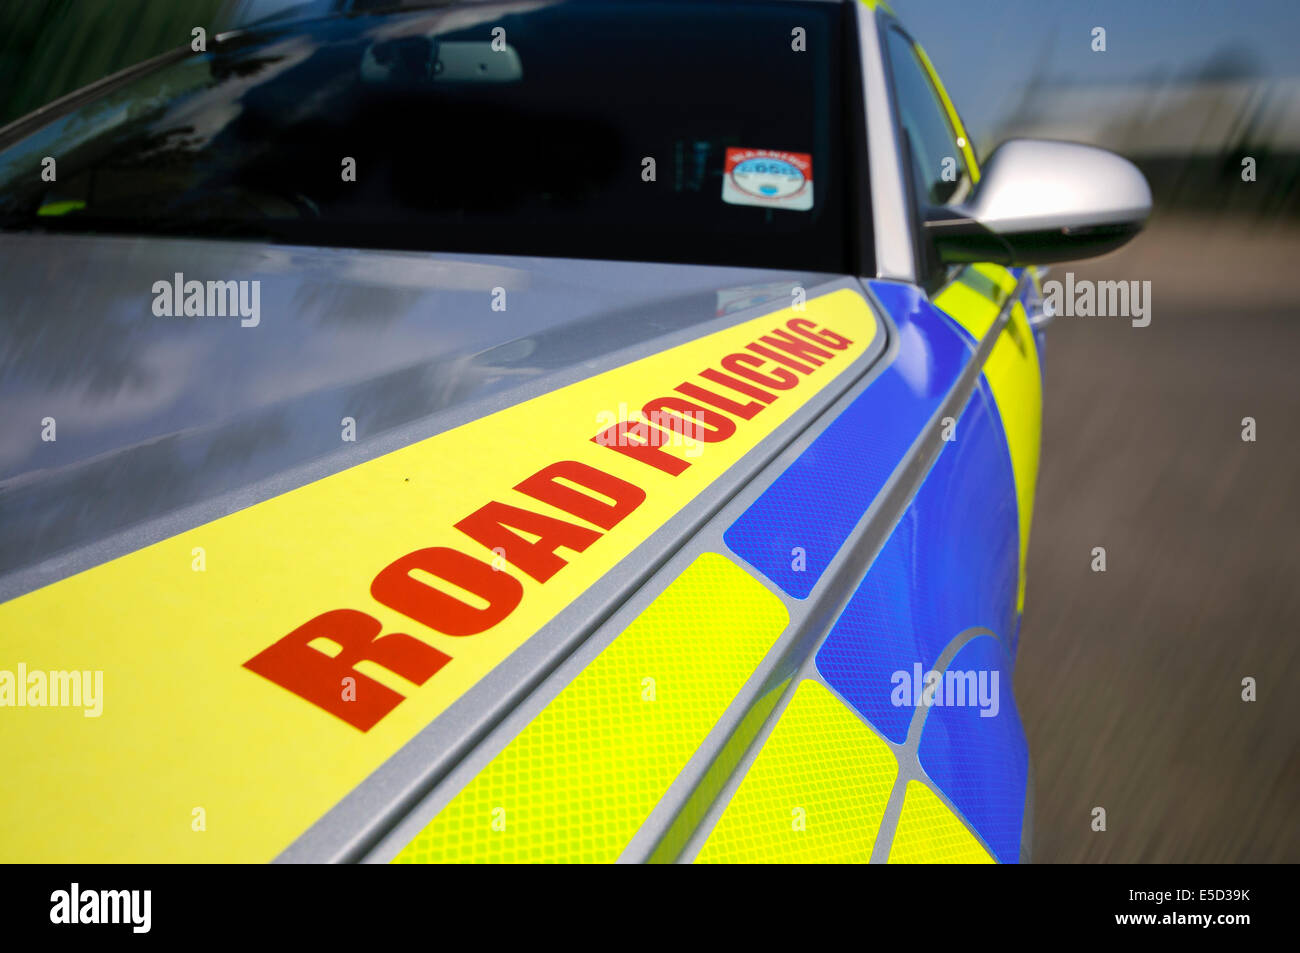 Lisburn, Northern Ireland. 25 Jul 2014 - 'Road Policing' on the bonnet of a traffic unit police patrol vehicle - Stock Image